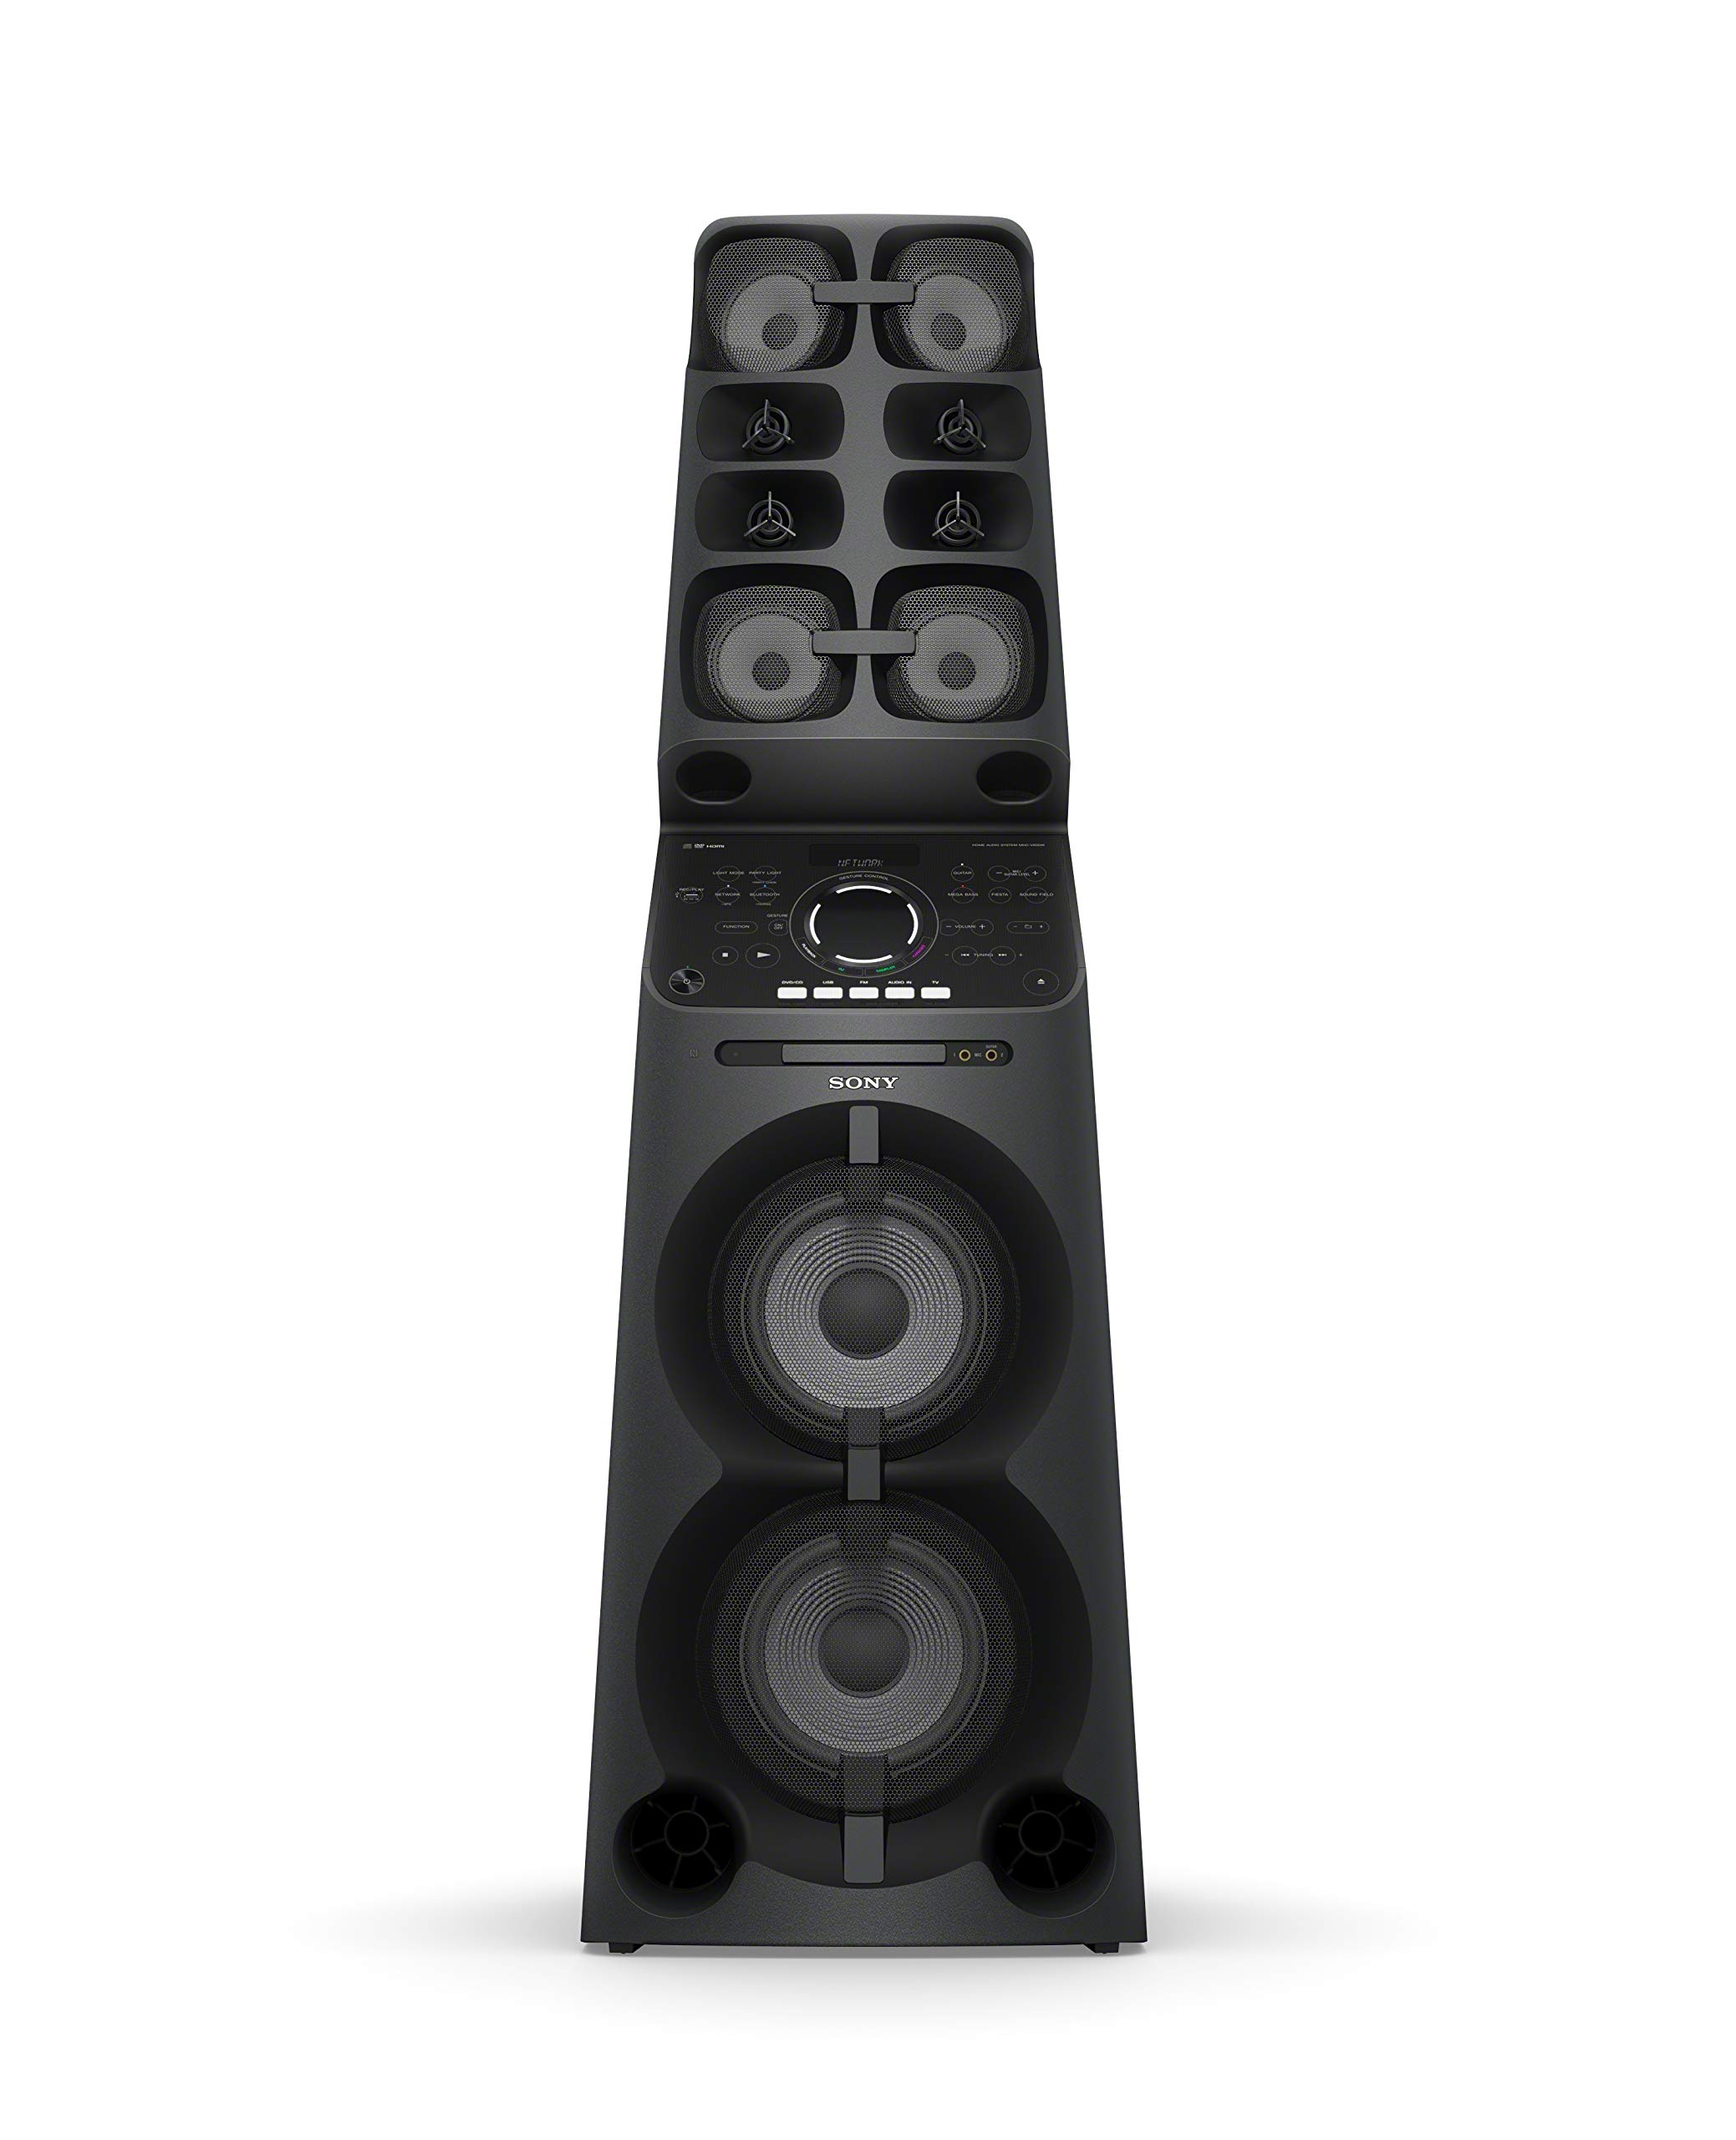 Sony MHC-V90DW, High Power Party Speaker. All-in-One Music System with Lighting Effects